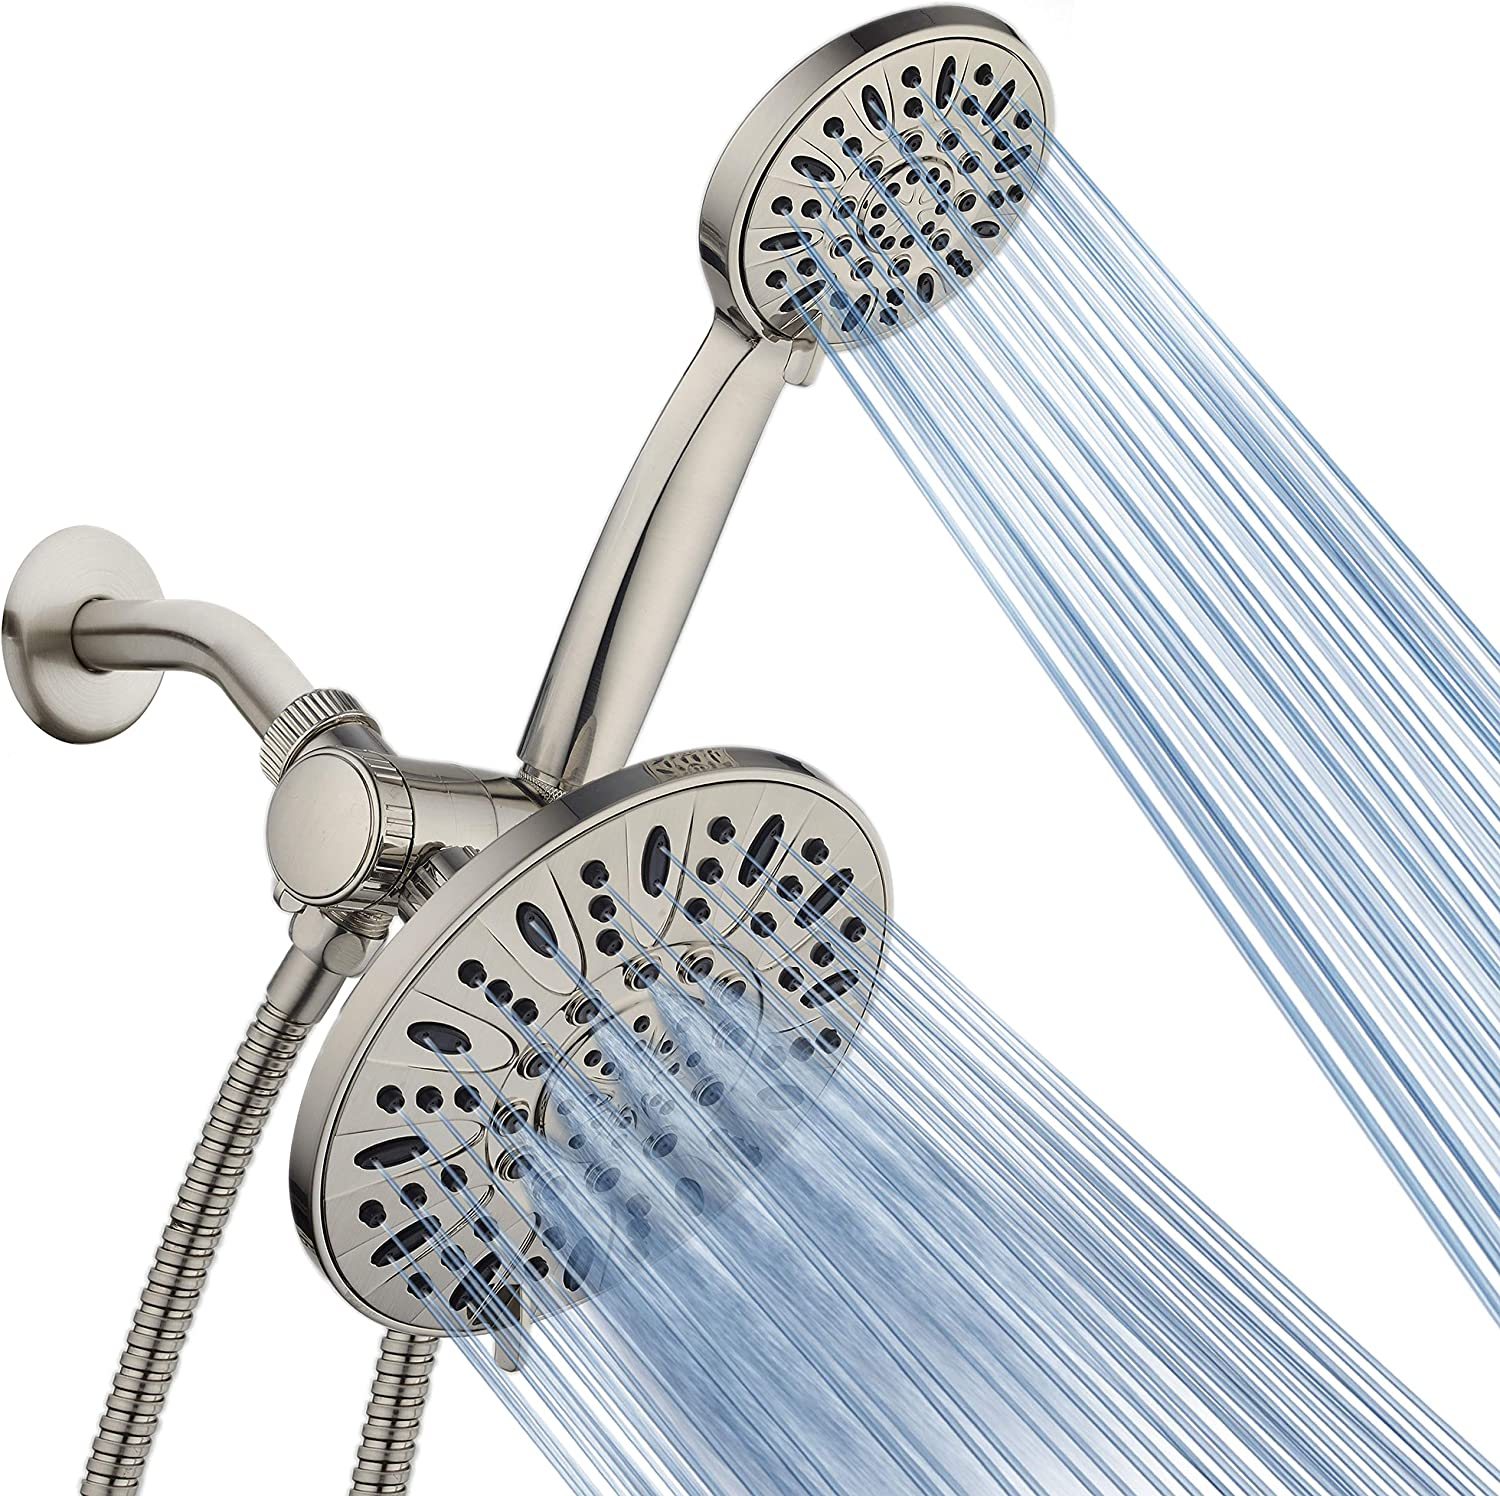 "AquaDance 7"" Premium High Pressure 3-Way Rainfall Combo for The Best of Both Worlds – Enjoy Luxurious Rain Showerhead and 6-Setting Hand Held Shower Separately or Together – Brushed Nickel Finish"